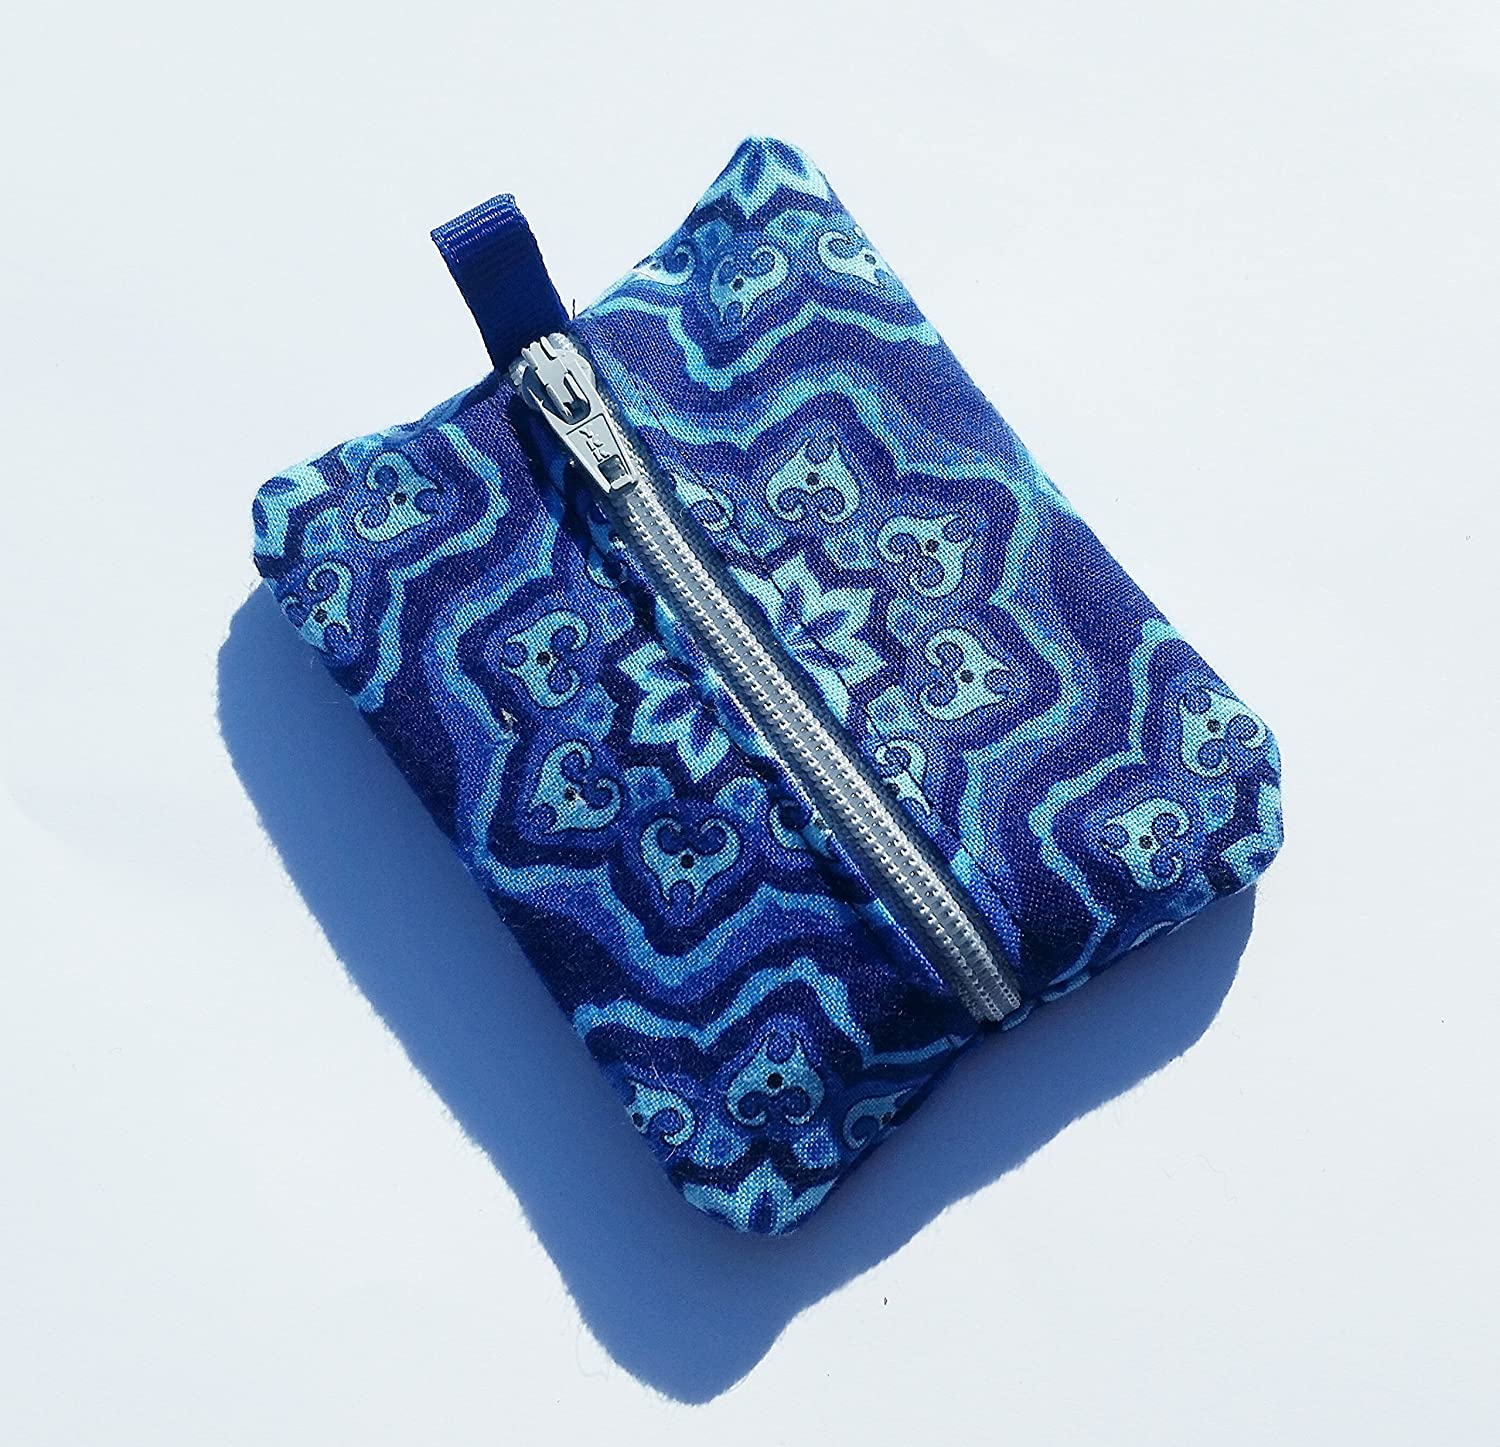 Ear Bud Pouch / Earbud Holder / Zip Pouch / Mini Zip Pouch / Jump Drive Holder ::: Designs in Blue